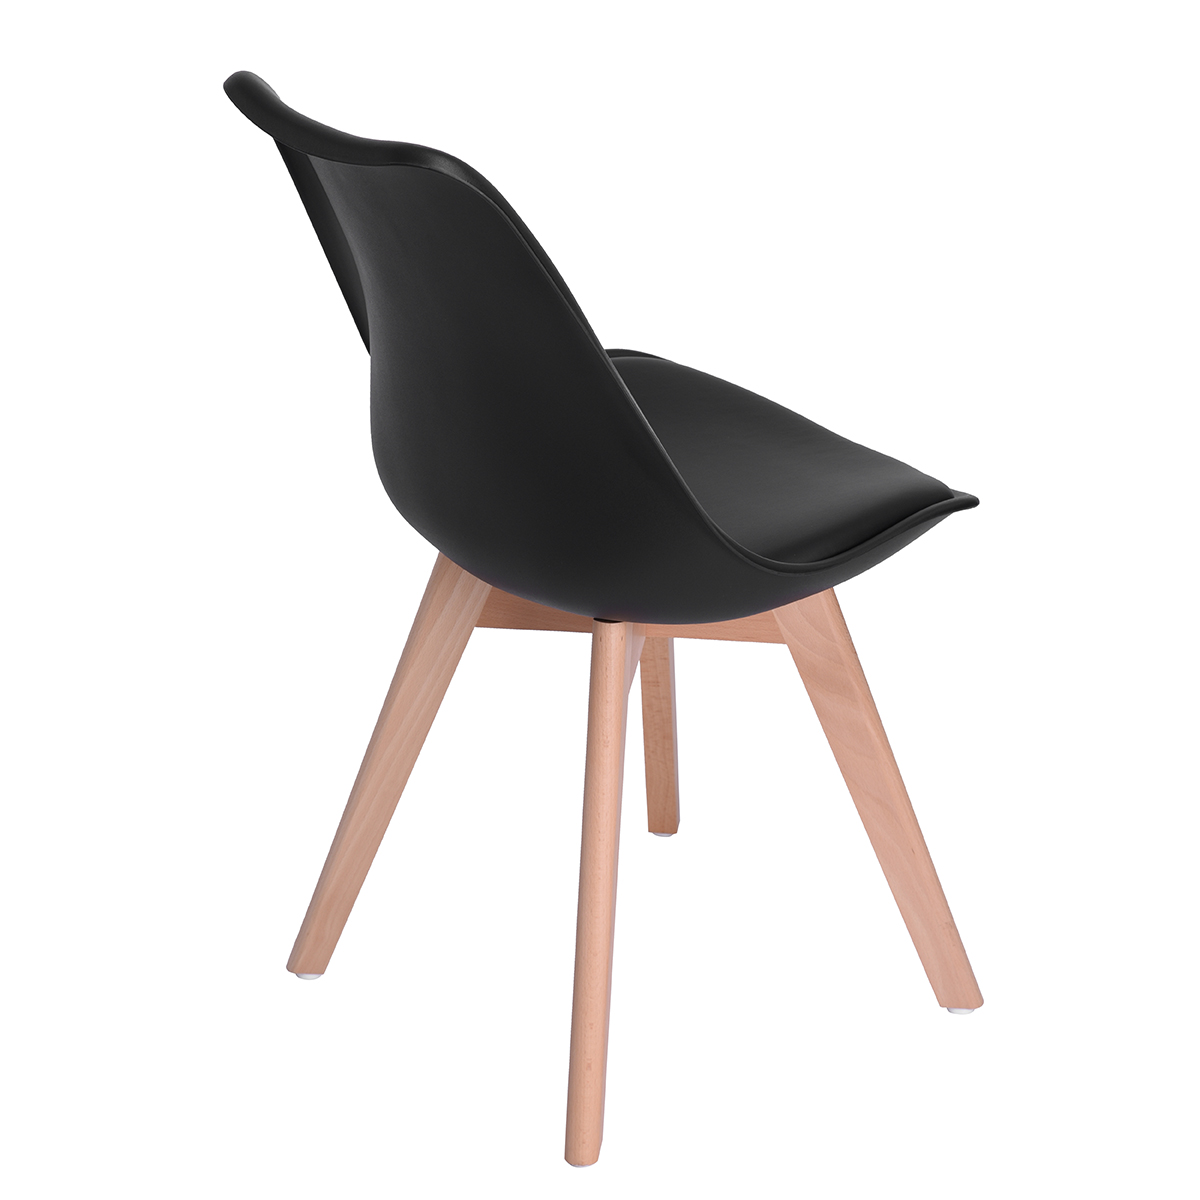 Chaise Scandinave Rembourree Lot De 4 Chaise De Salle A Manger Scandinave Design Nordique Noir